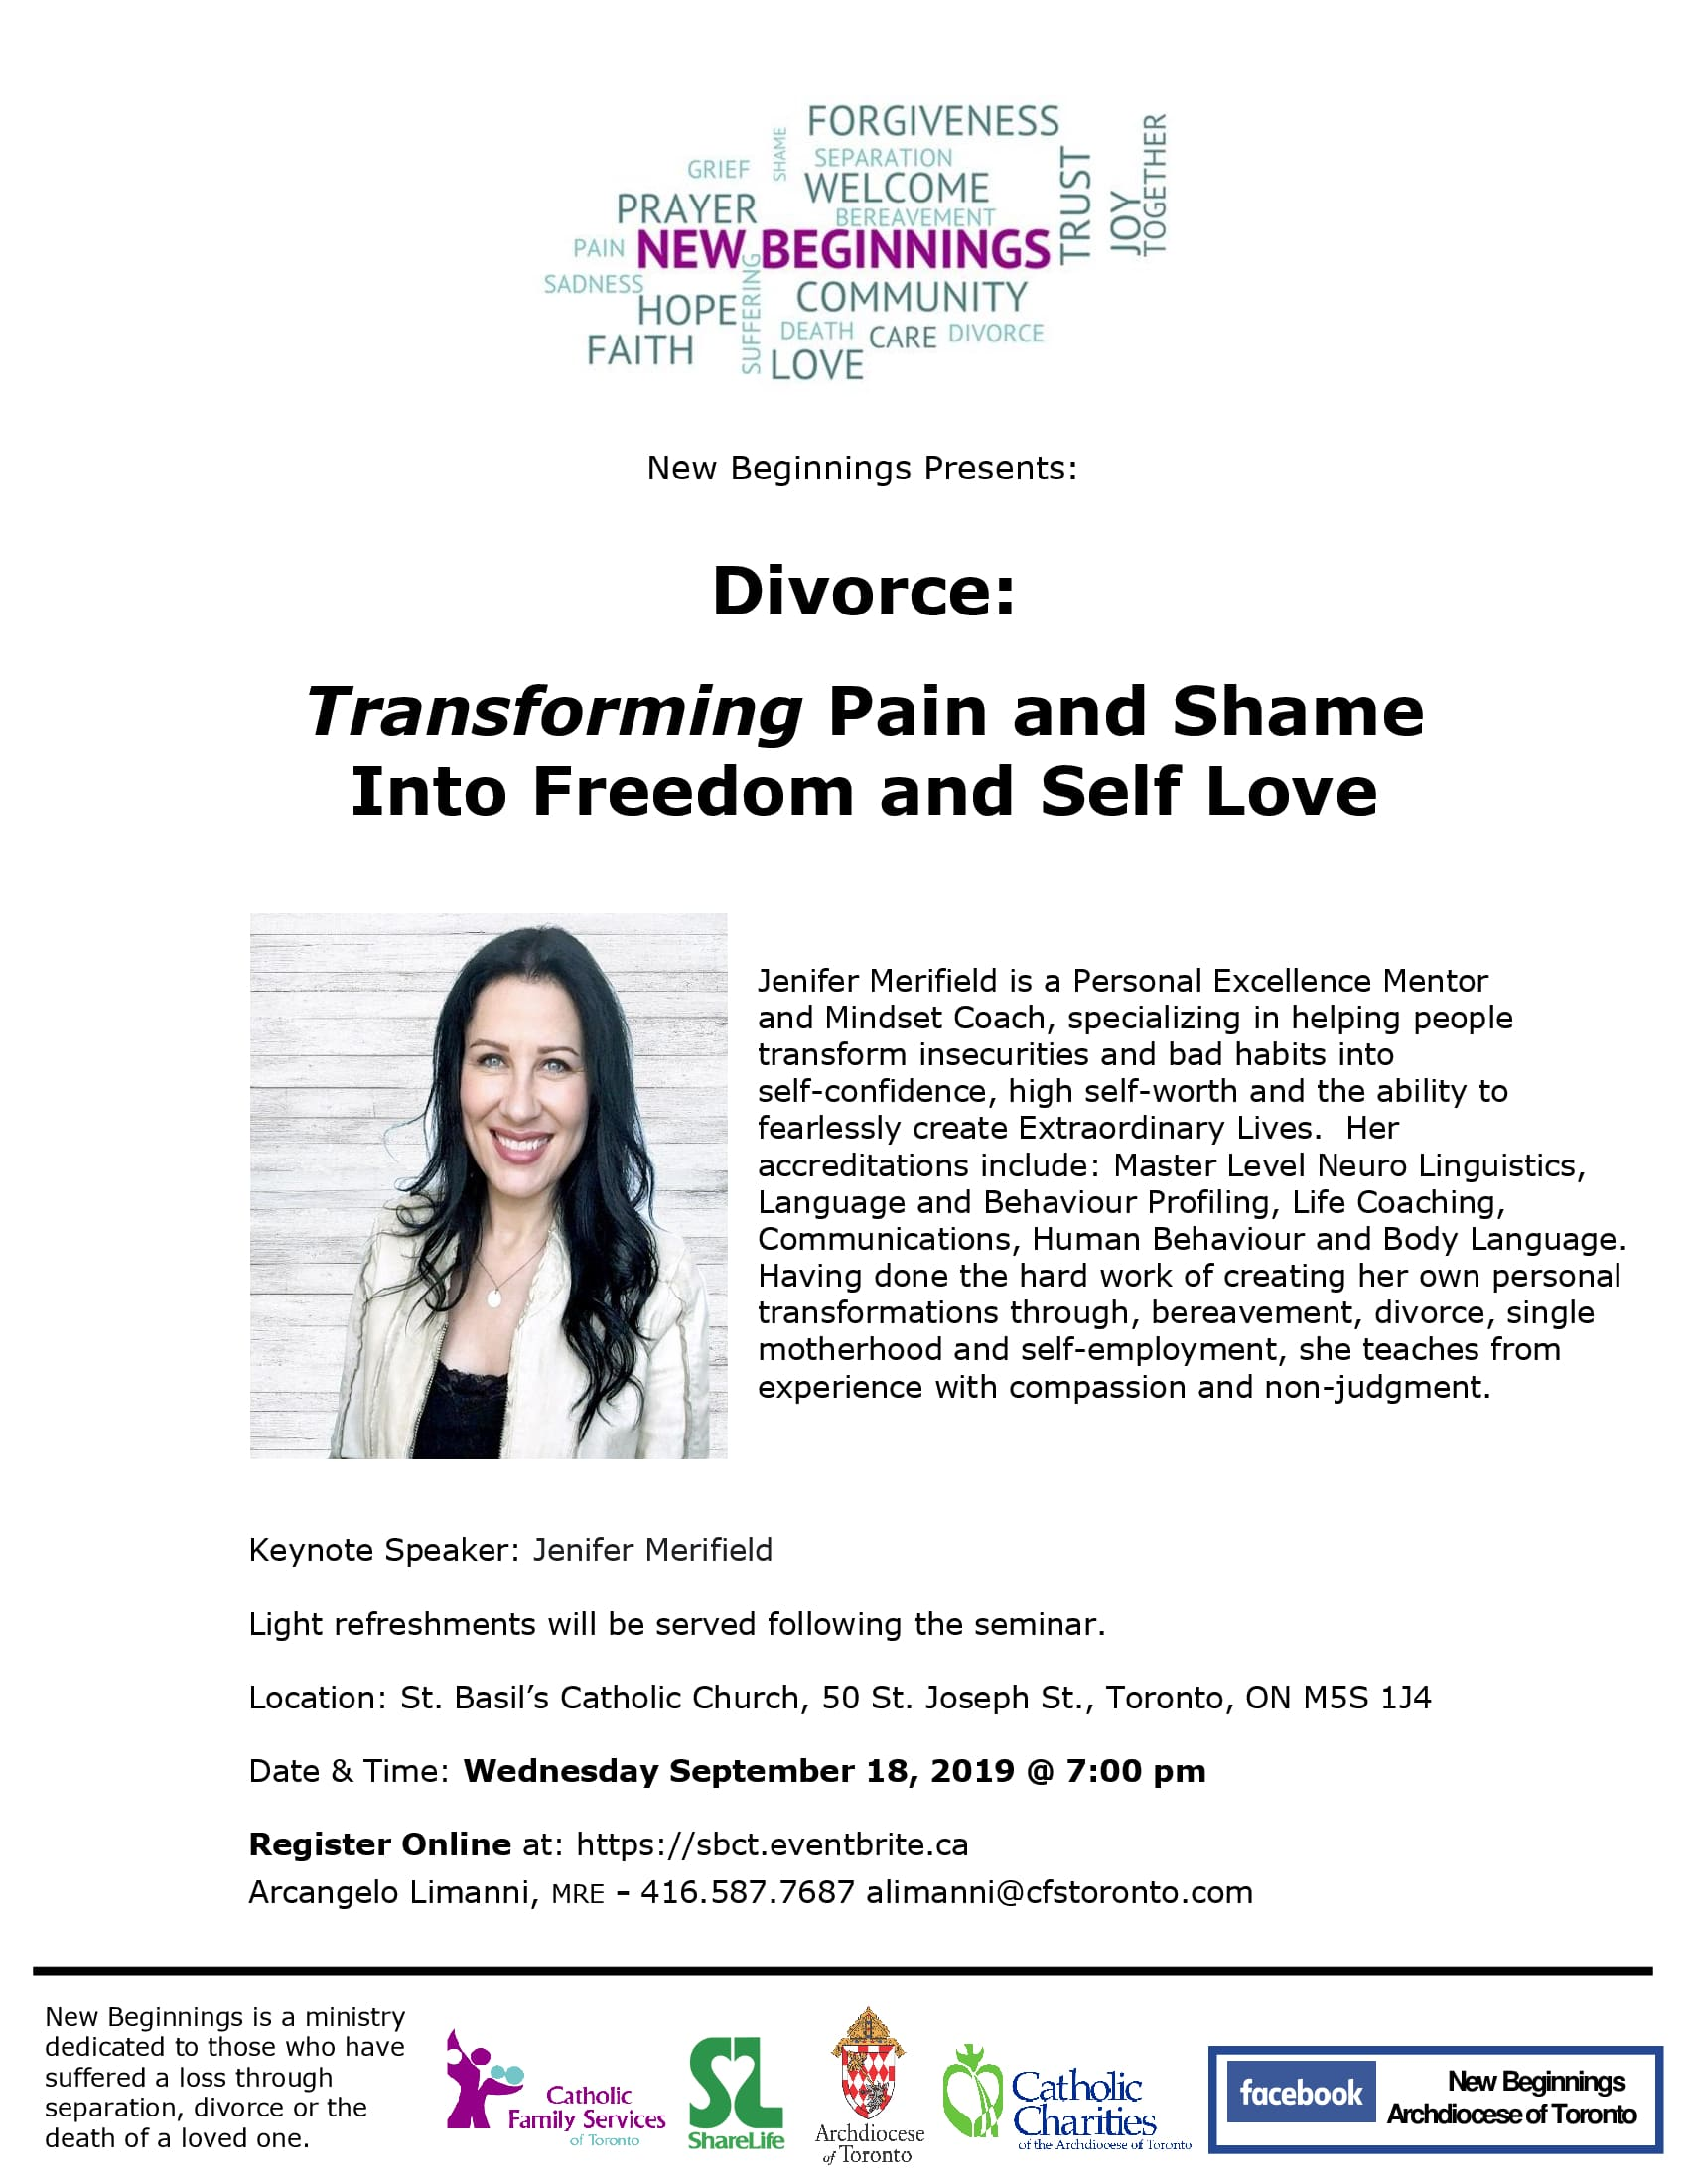 New Beginnings Seminar - Divorce: Transforming Pain and